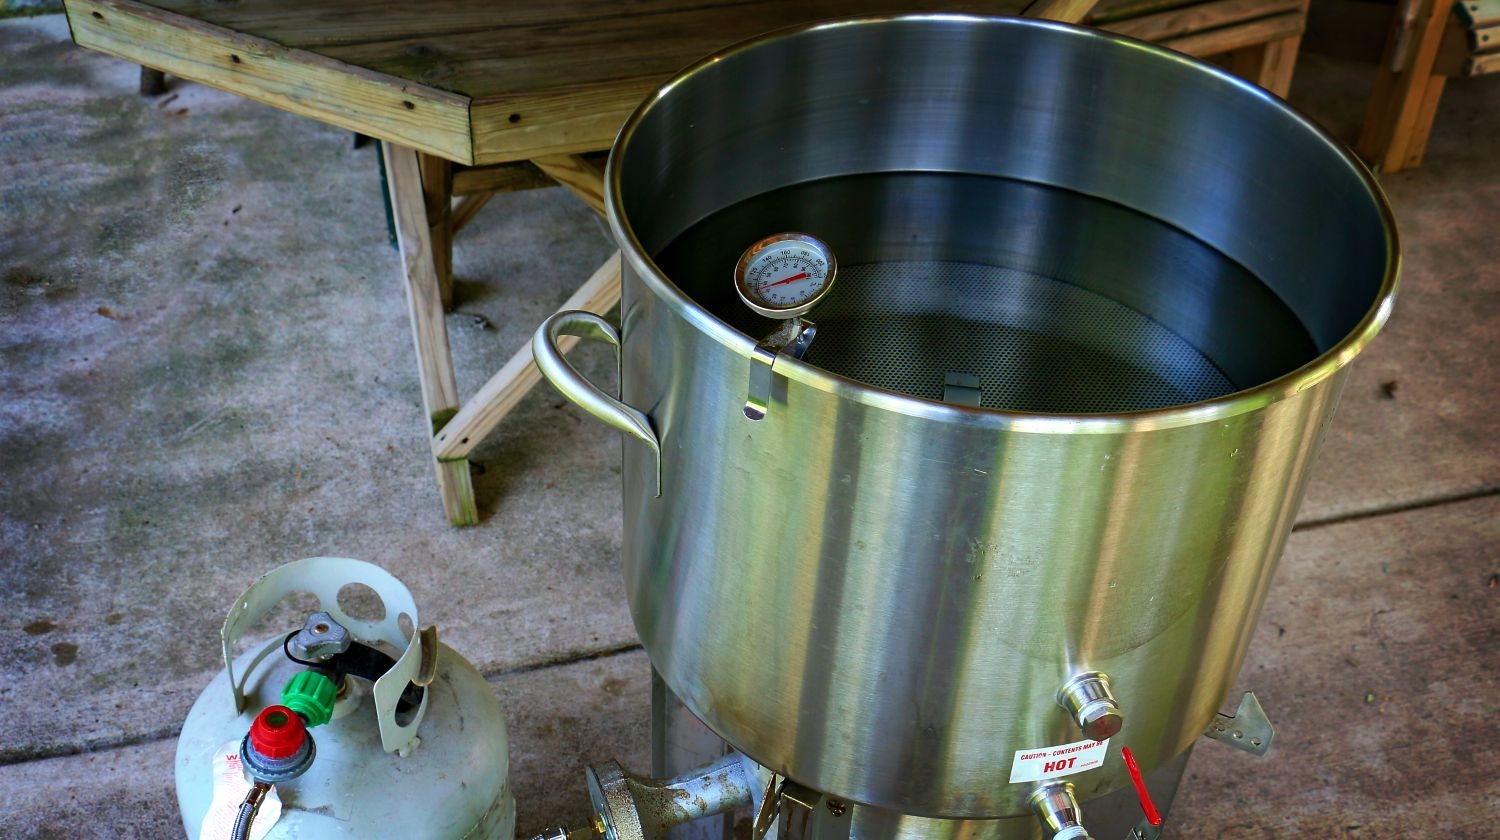 Featured | Heating water to make home brewed beer | How To Make A Still | Self Reliance